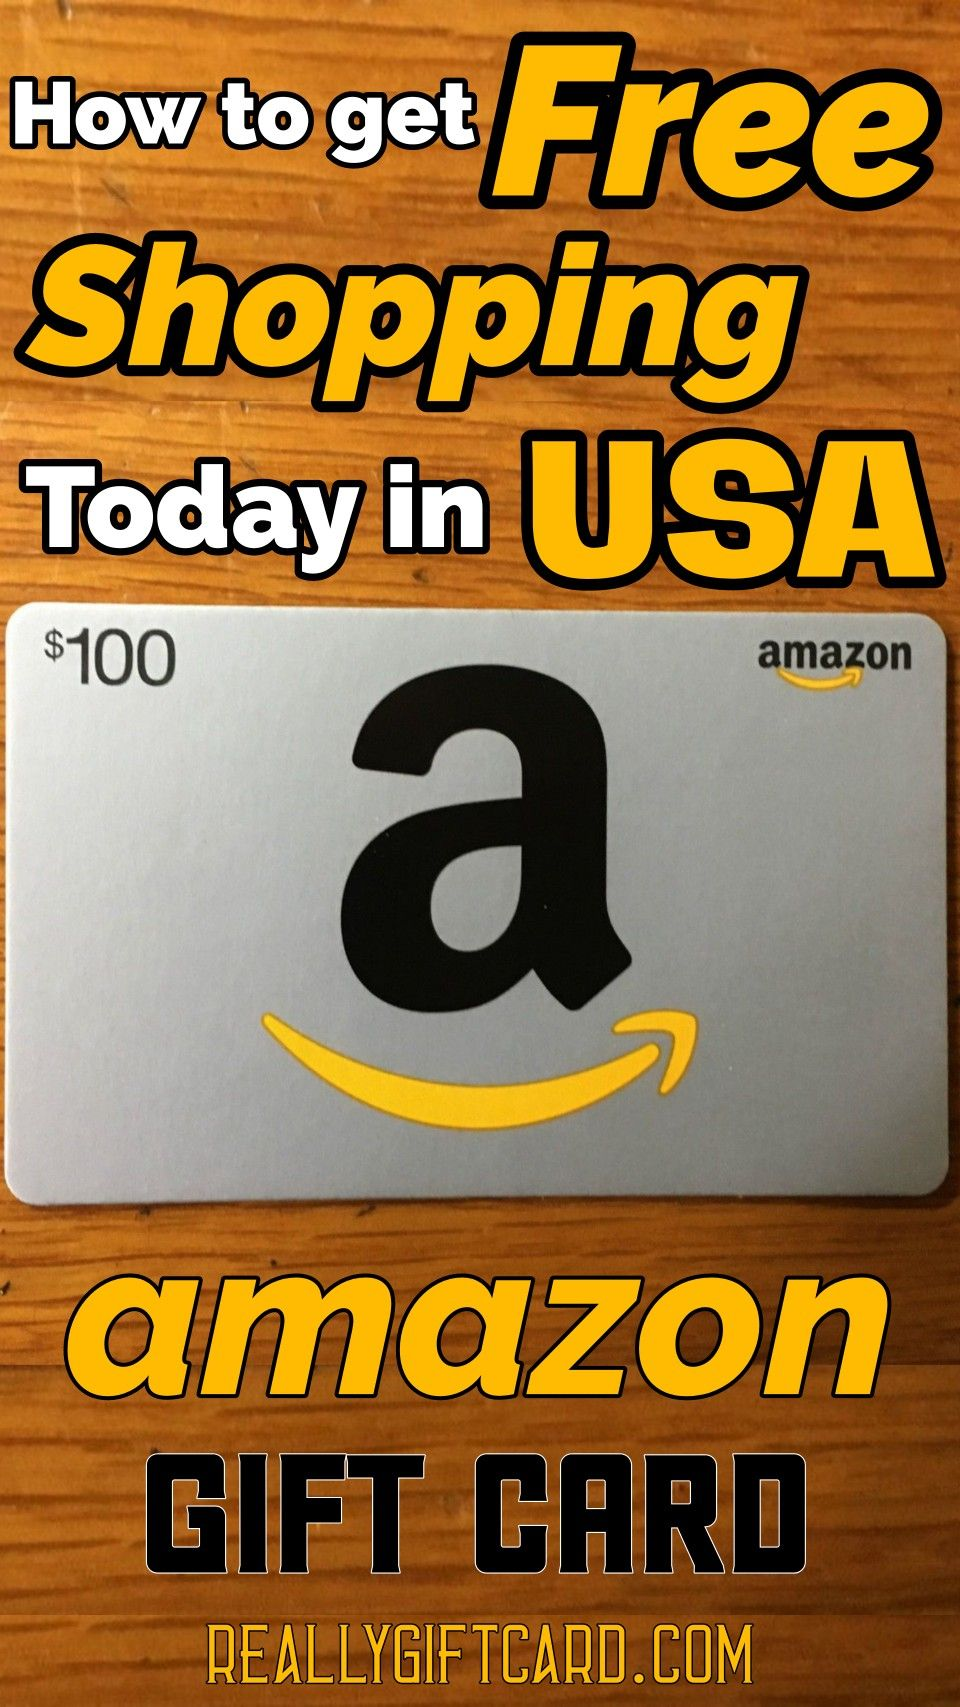 Us Amazon Gift Cards 24 7 Email Delivery Amazon Gift Cards Amazon Gifts Grocery Gift Card